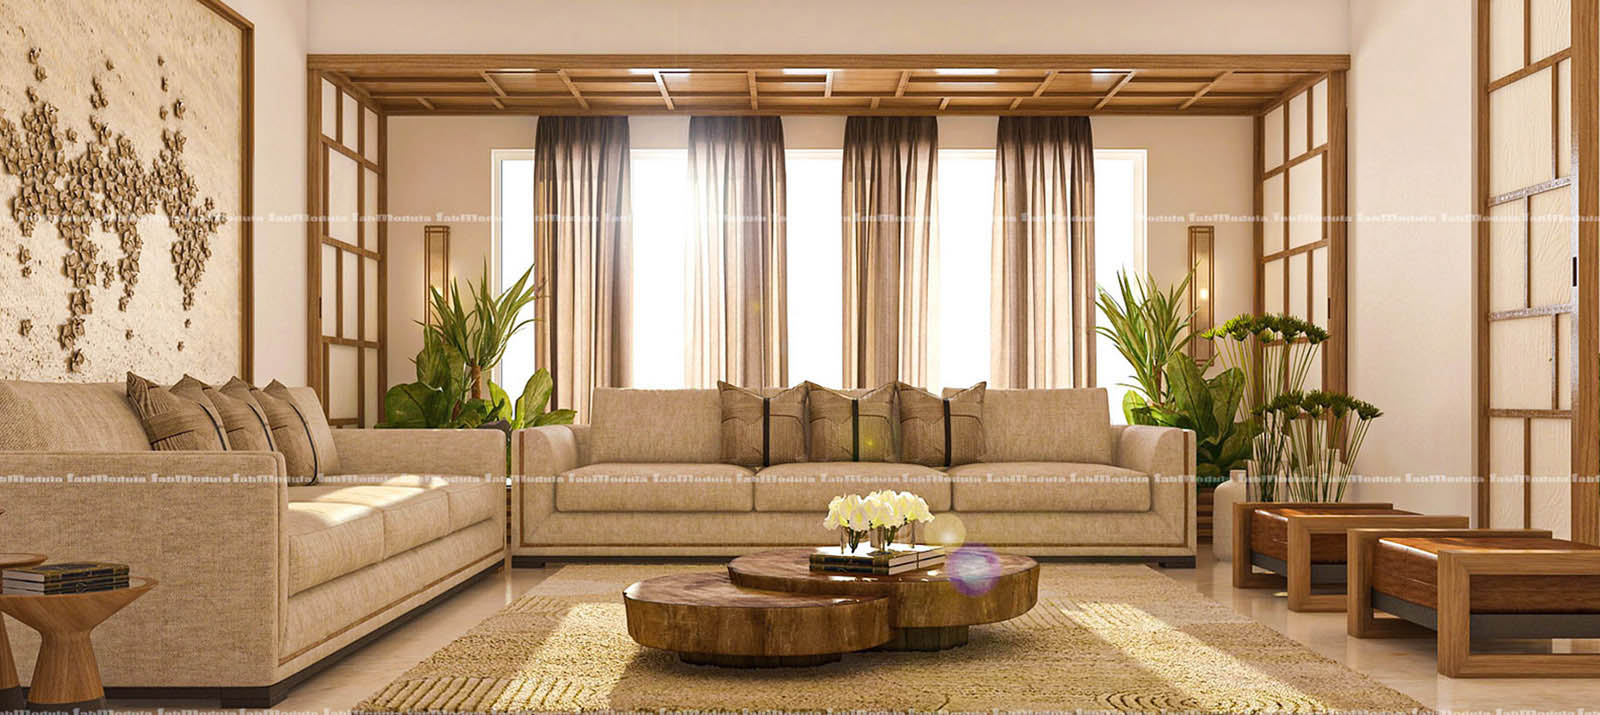 Top interior designers bangalore